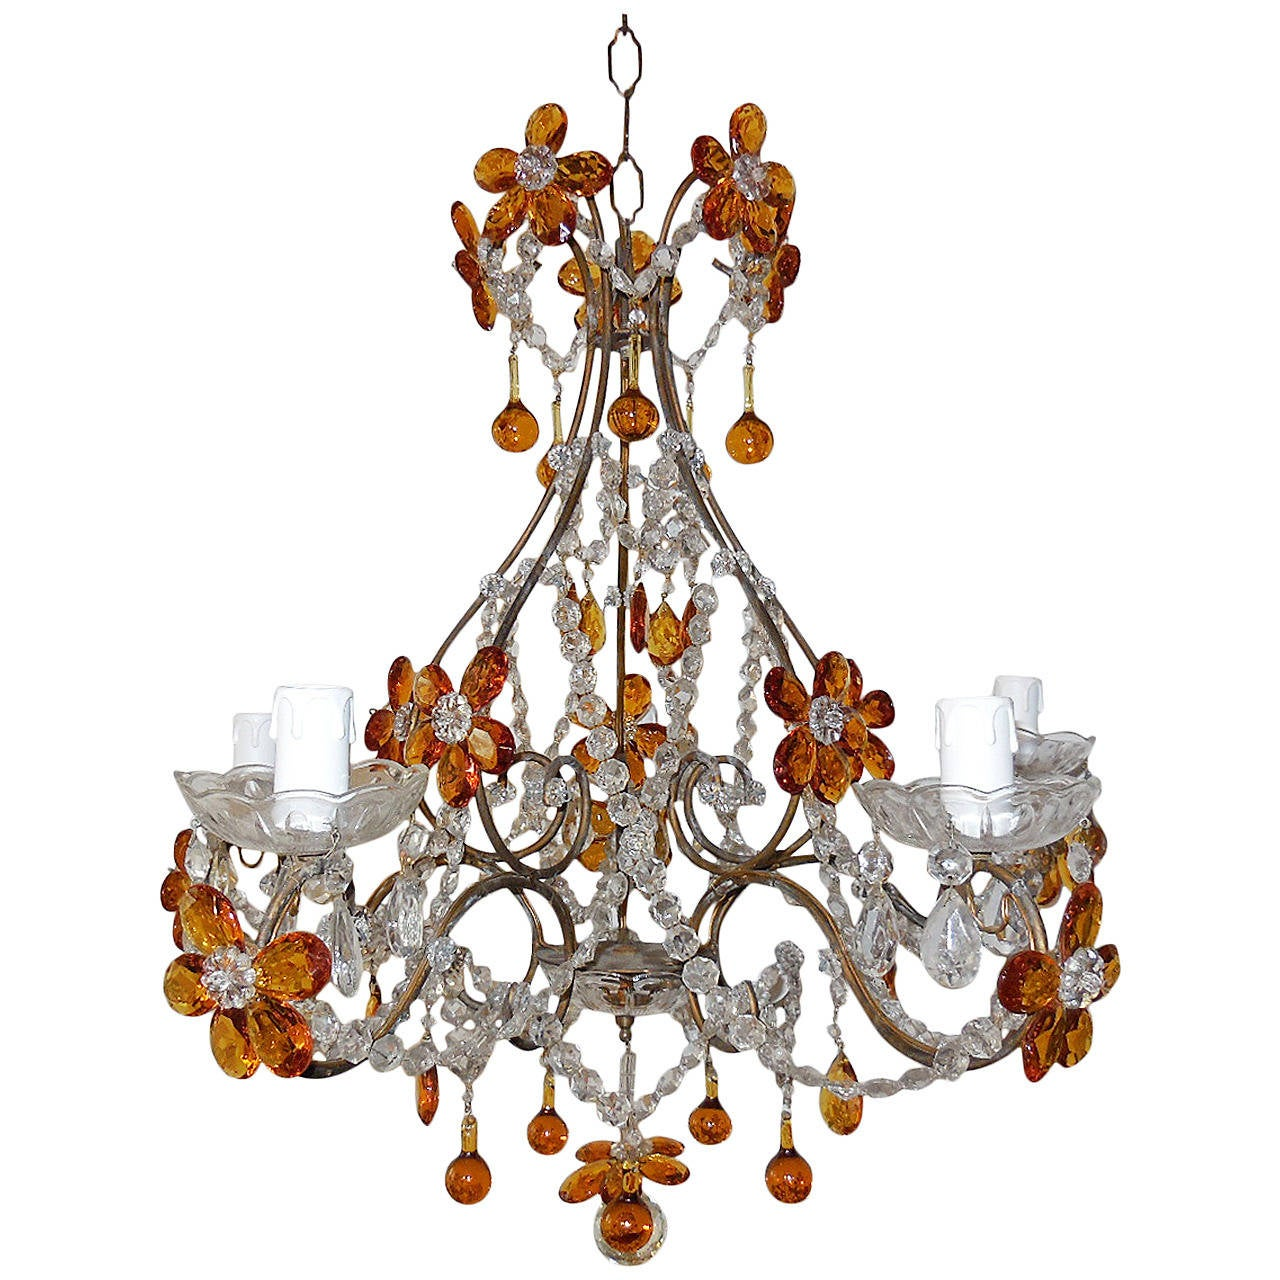 French amber balls crystal prisms flowers chandelier at 1stdibs french amber balls crystal prisms flowers chandelier for sale aloadofball Image collections